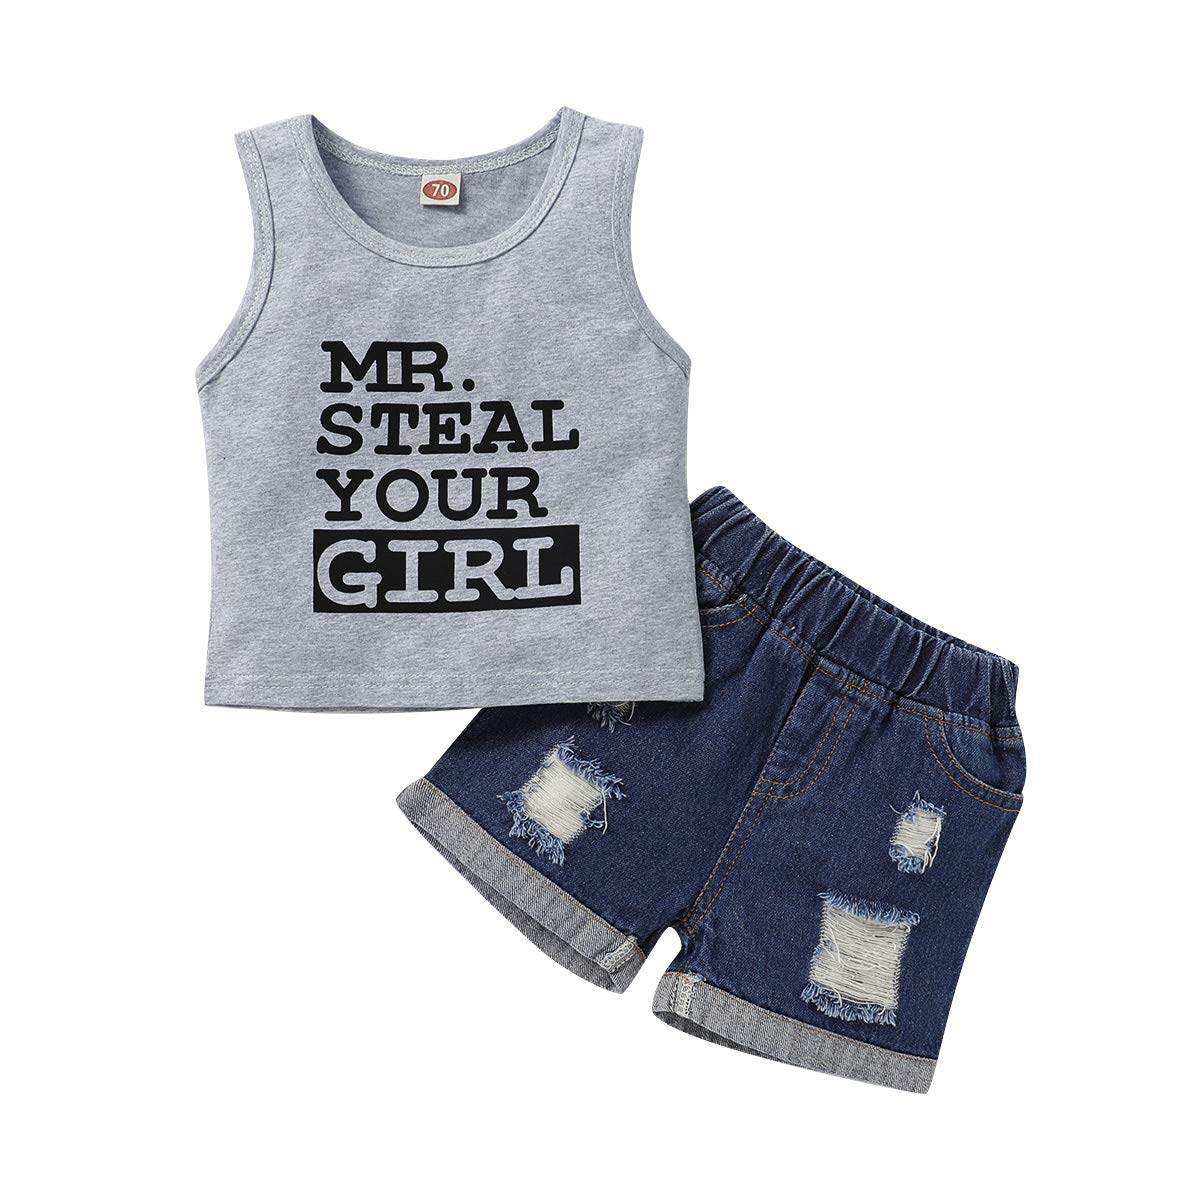 Toddler Baby Boy Clothes Sleeveless Baby Announcement Shirt Camo Shorts Infant Summer Outfit Set